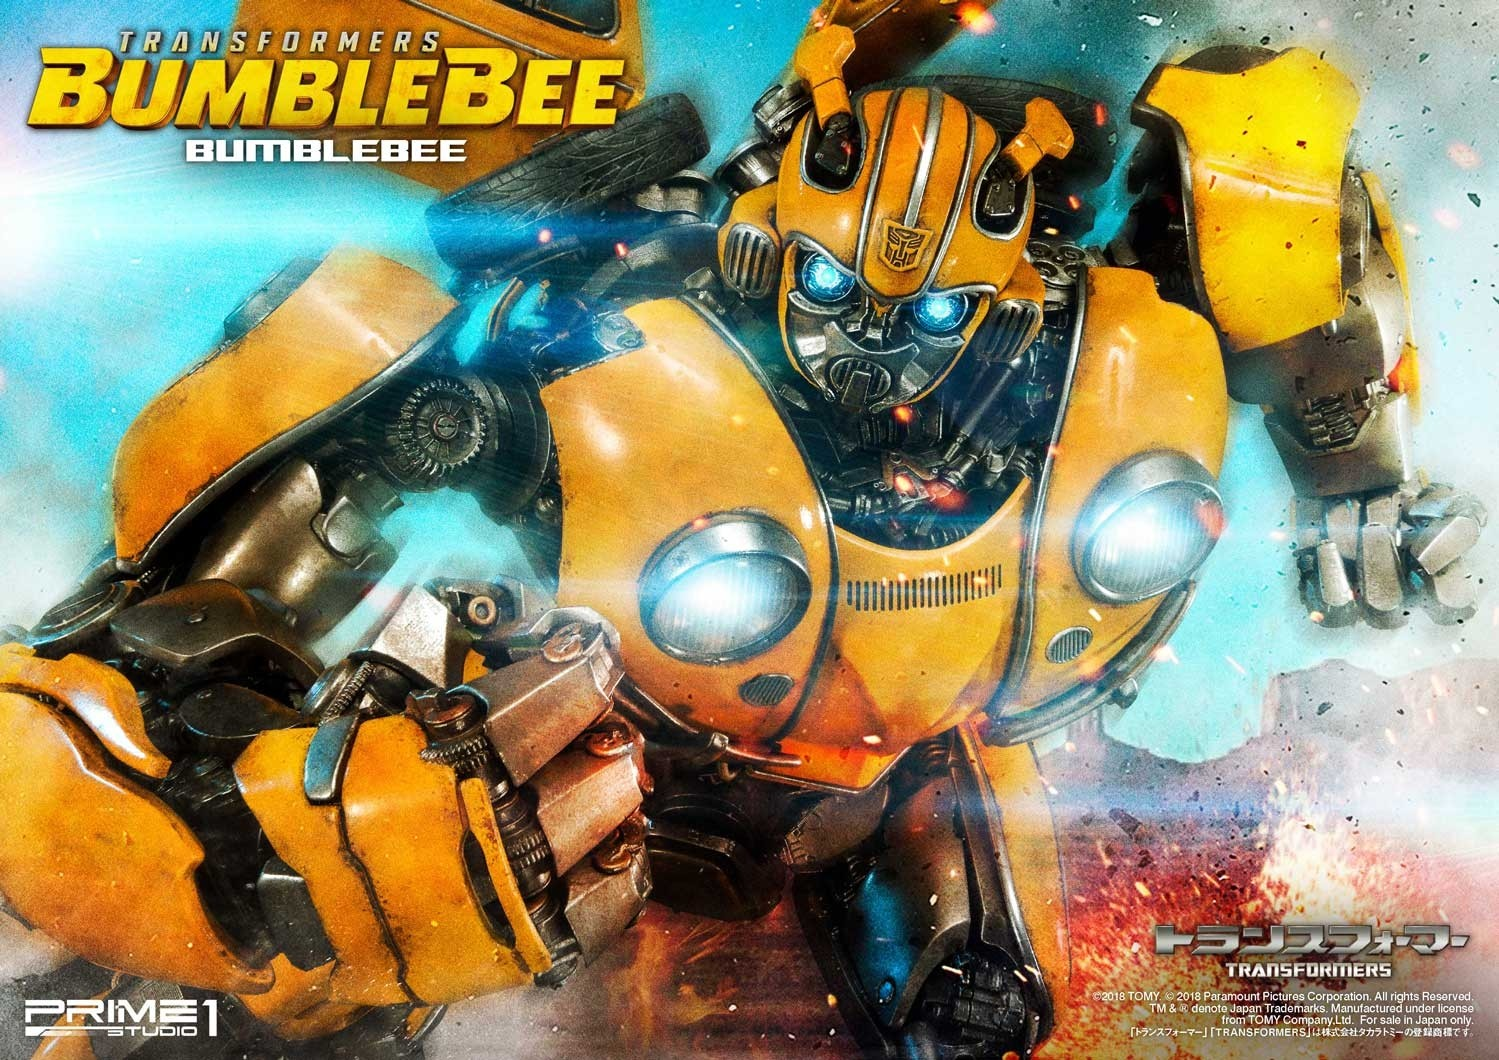 Bumblebee Film Movie Bumblebee Transformers Statue By Prime1